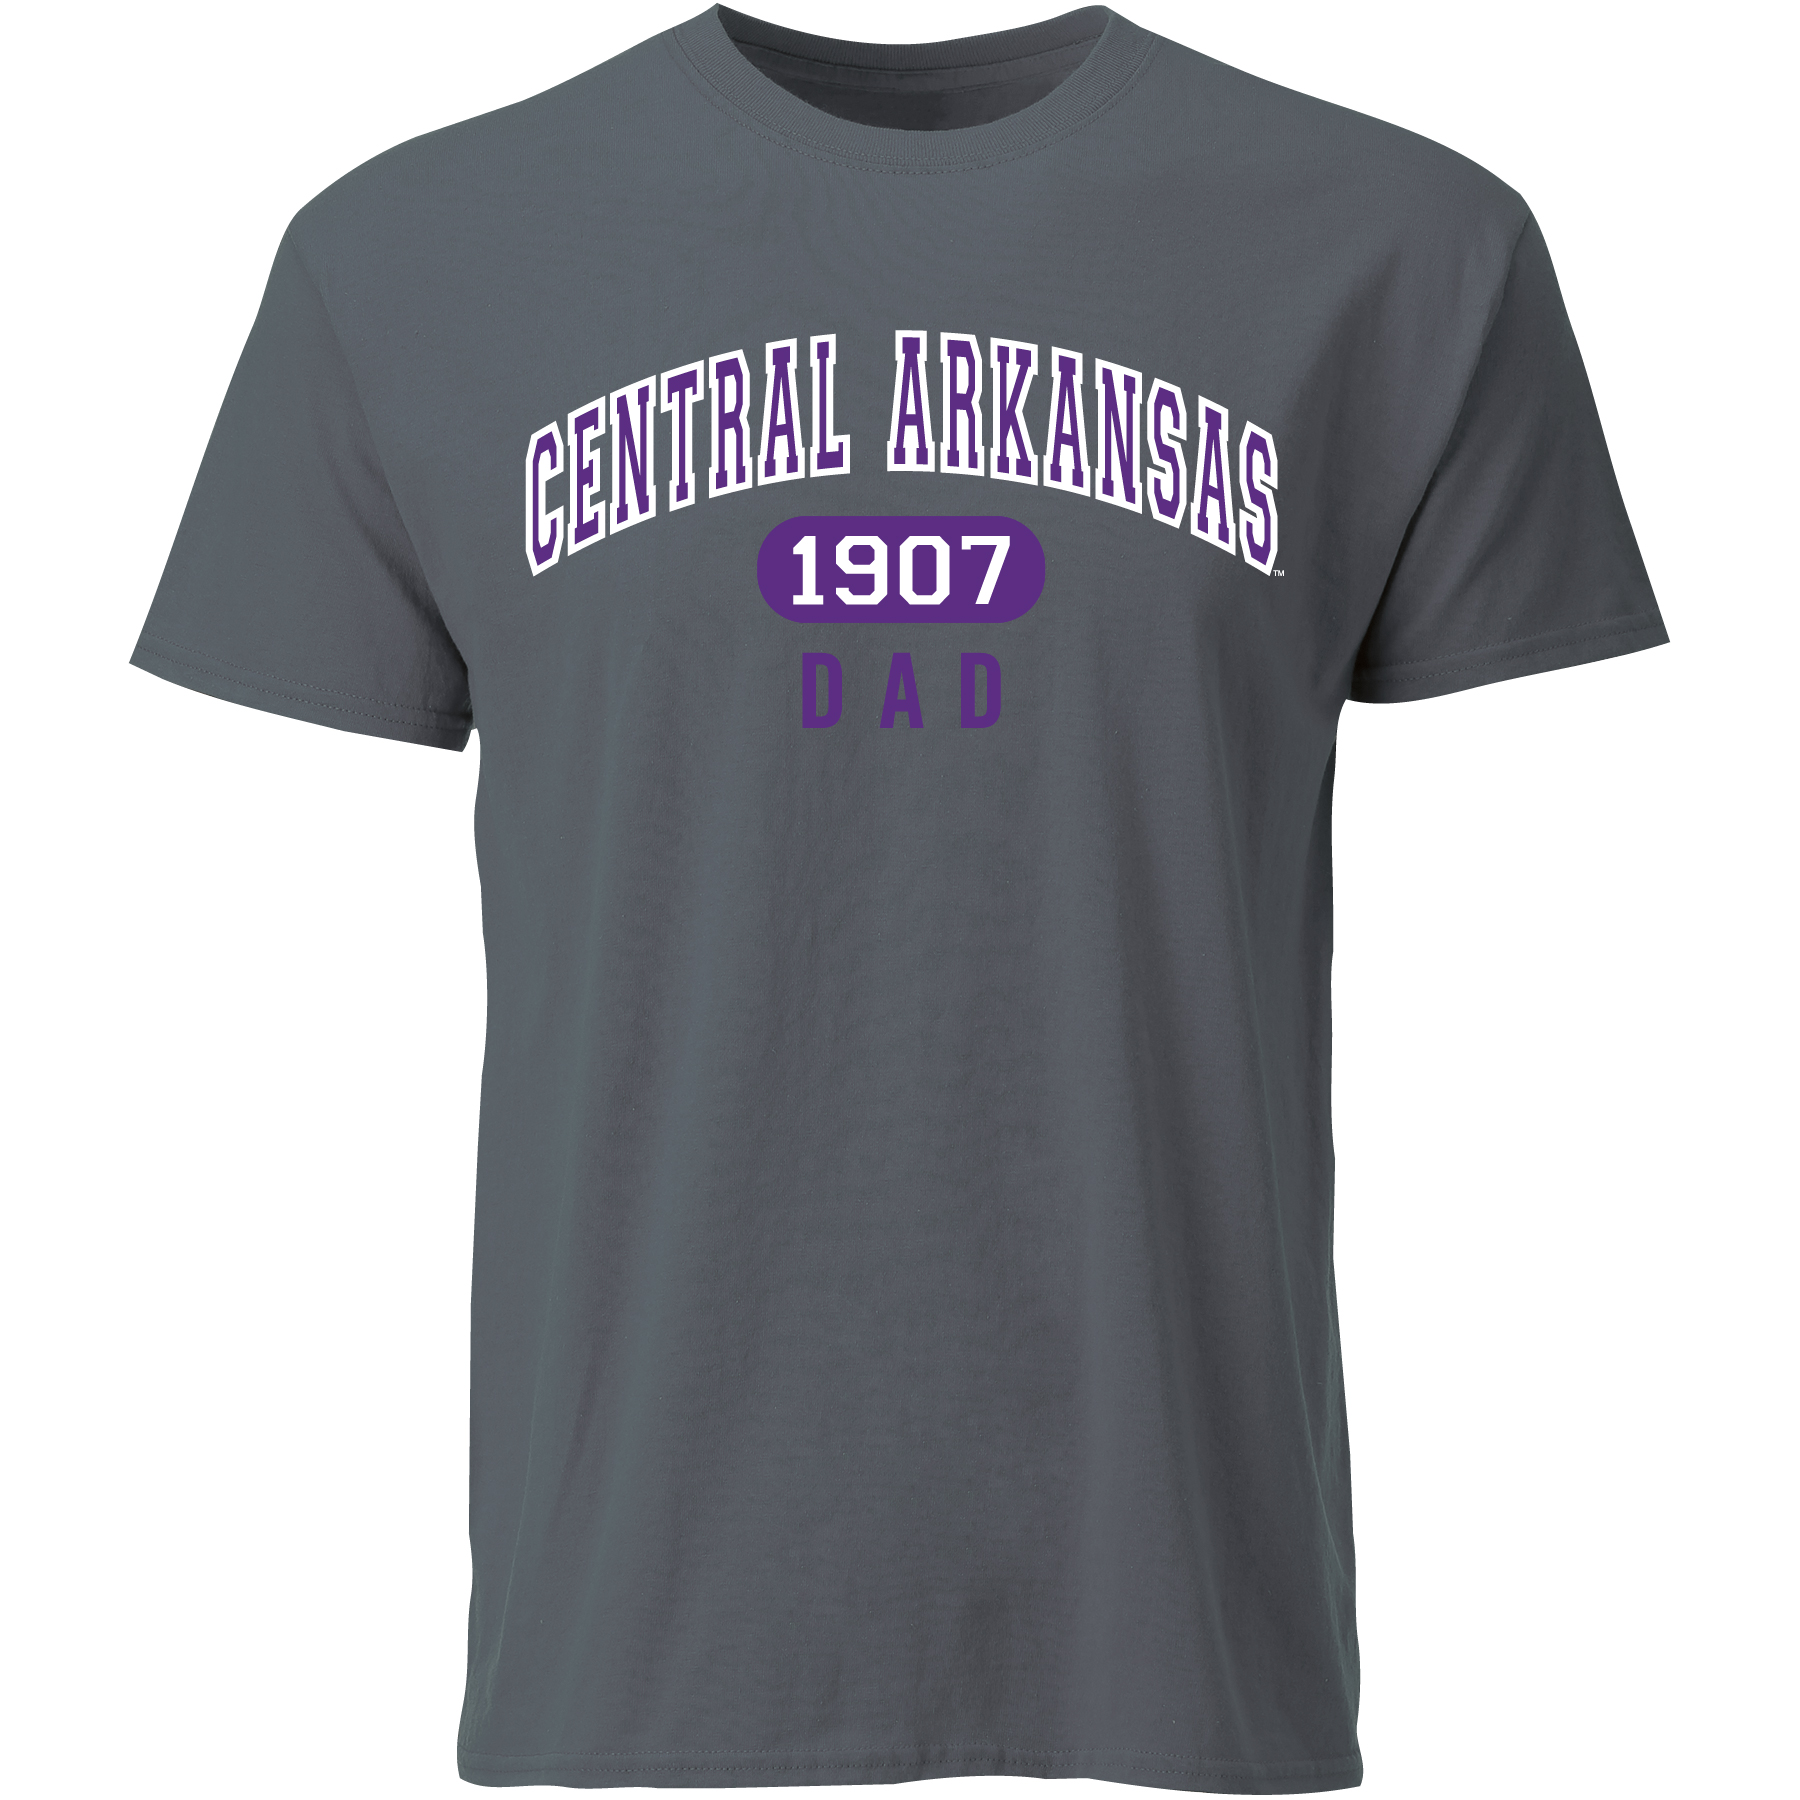 Central Arkansas Dad SS Tee